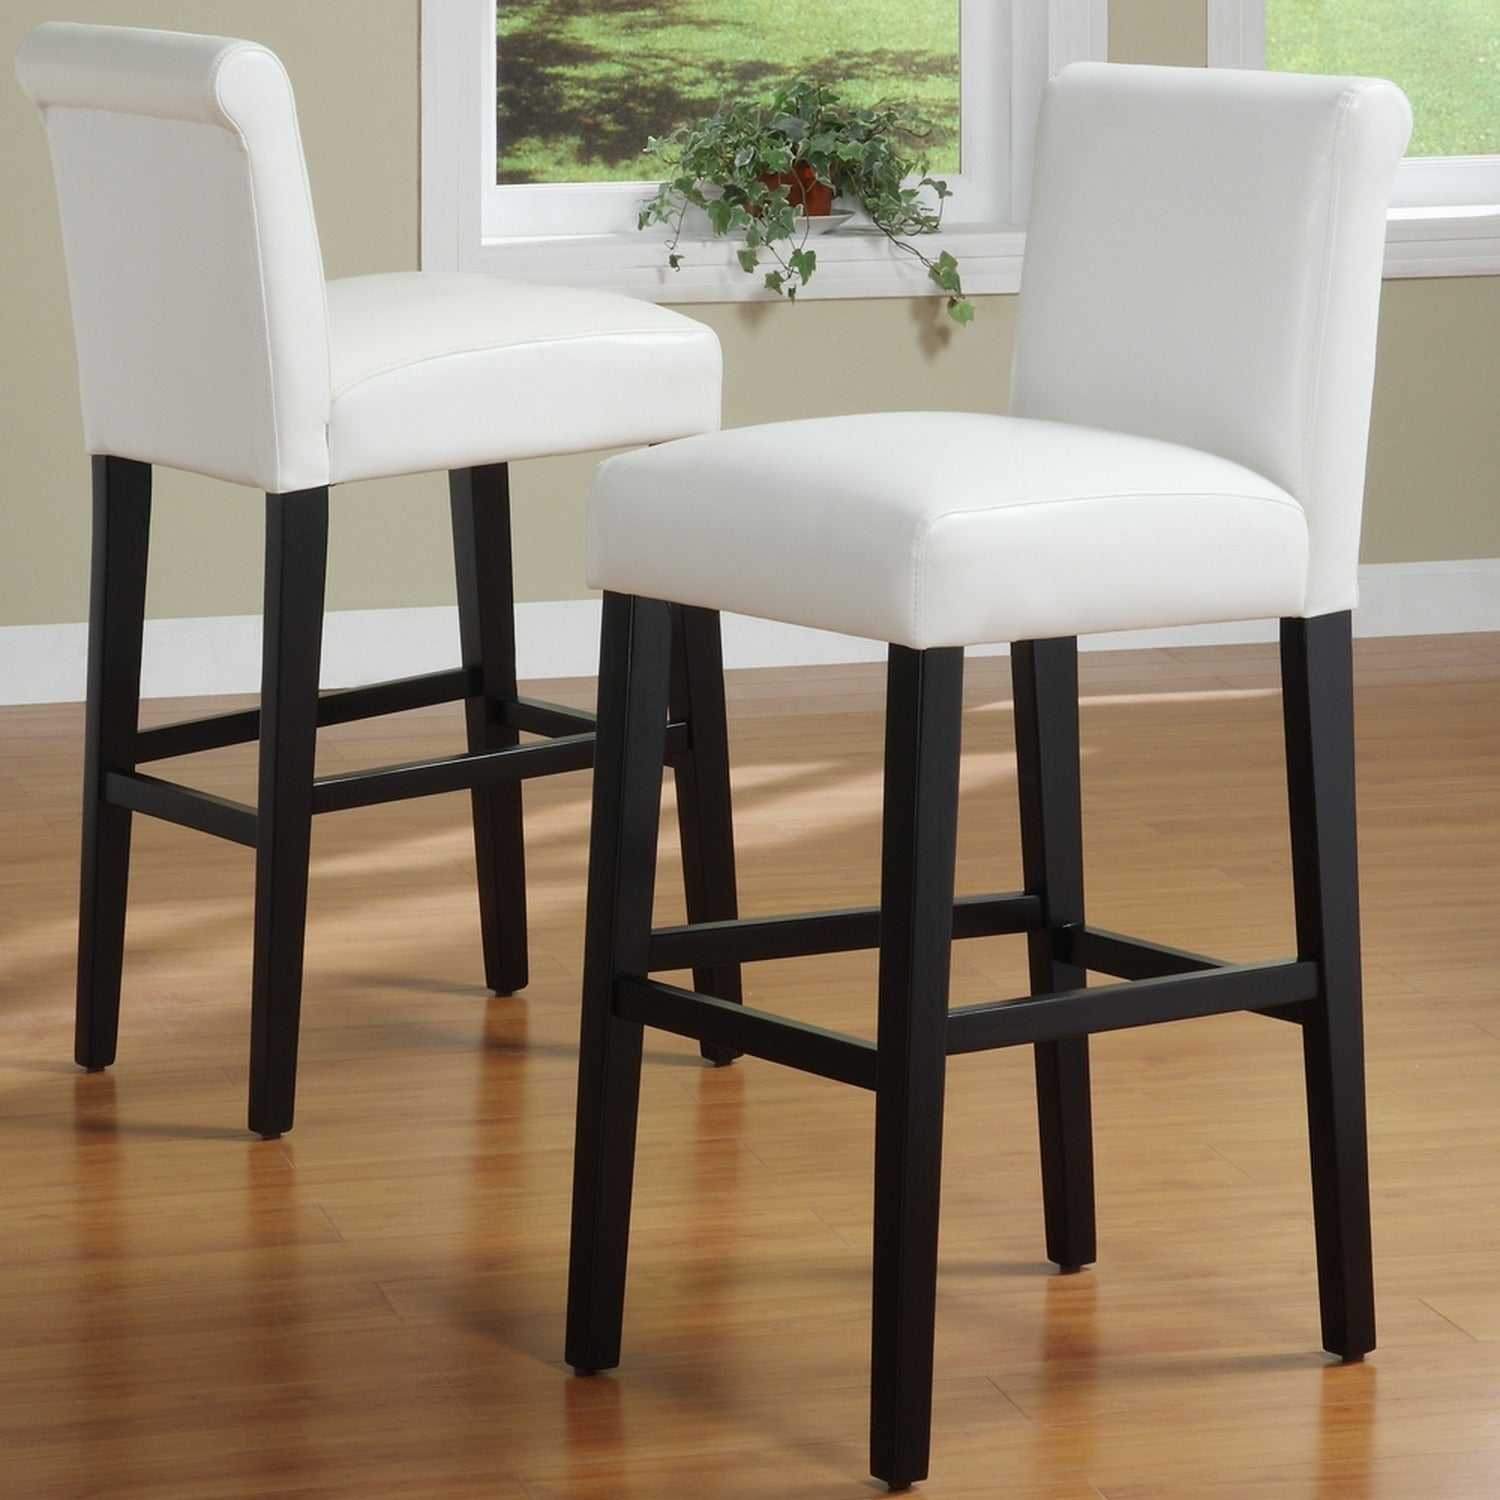 Surprising Bennett White Faux Leather 29 Inch High Back Bar Stools Set Of 2 By Inspire Q Bold Theyellowbook Wood Chair Design Ideas Theyellowbookinfo